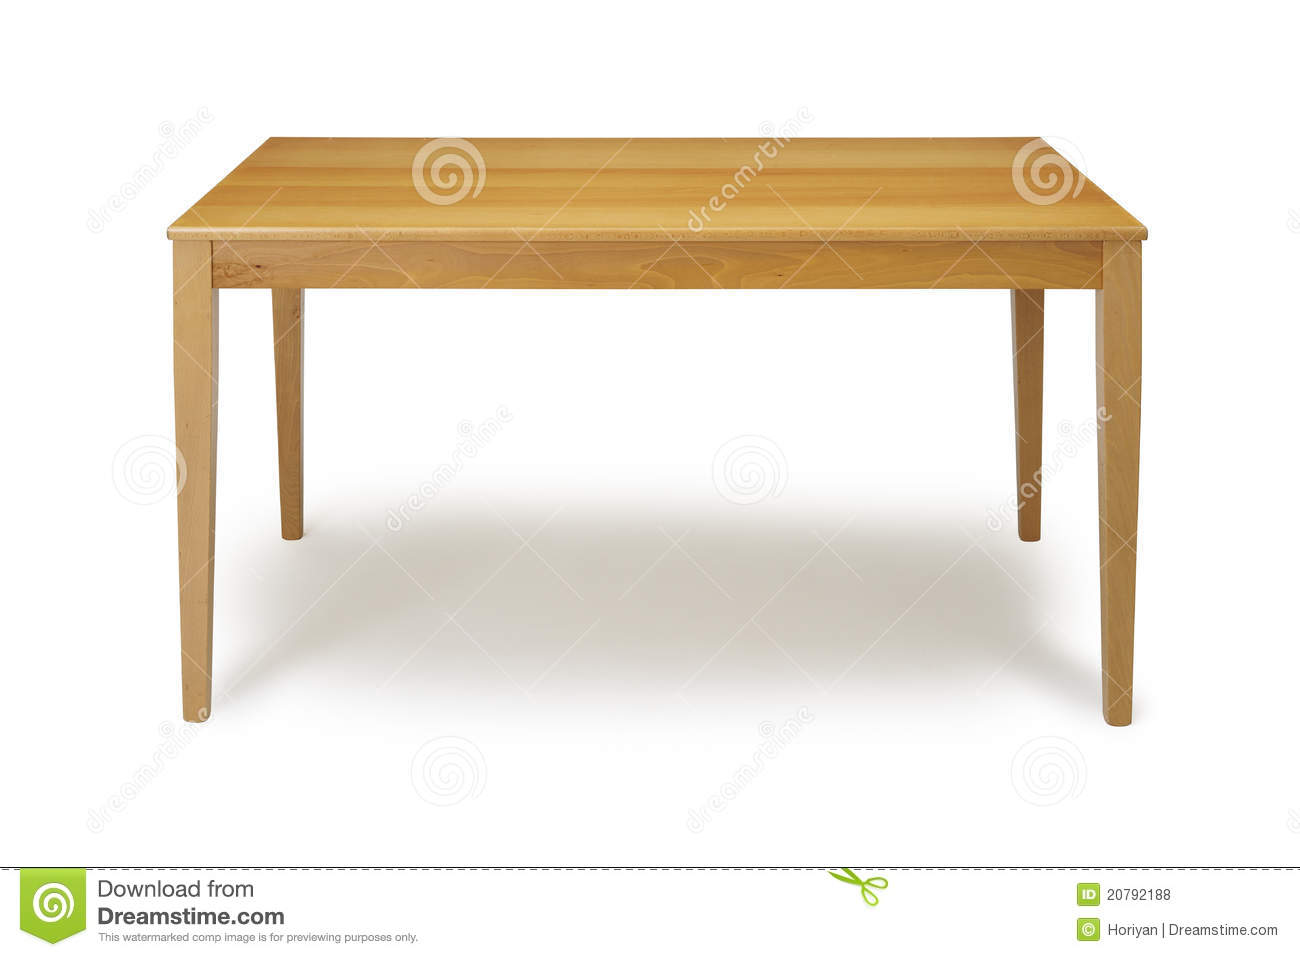 Marvelous photograph of Wooden Table Royalty Free Stock Photos Image: 20792188 with #84A625 color and 1300x957 pixels